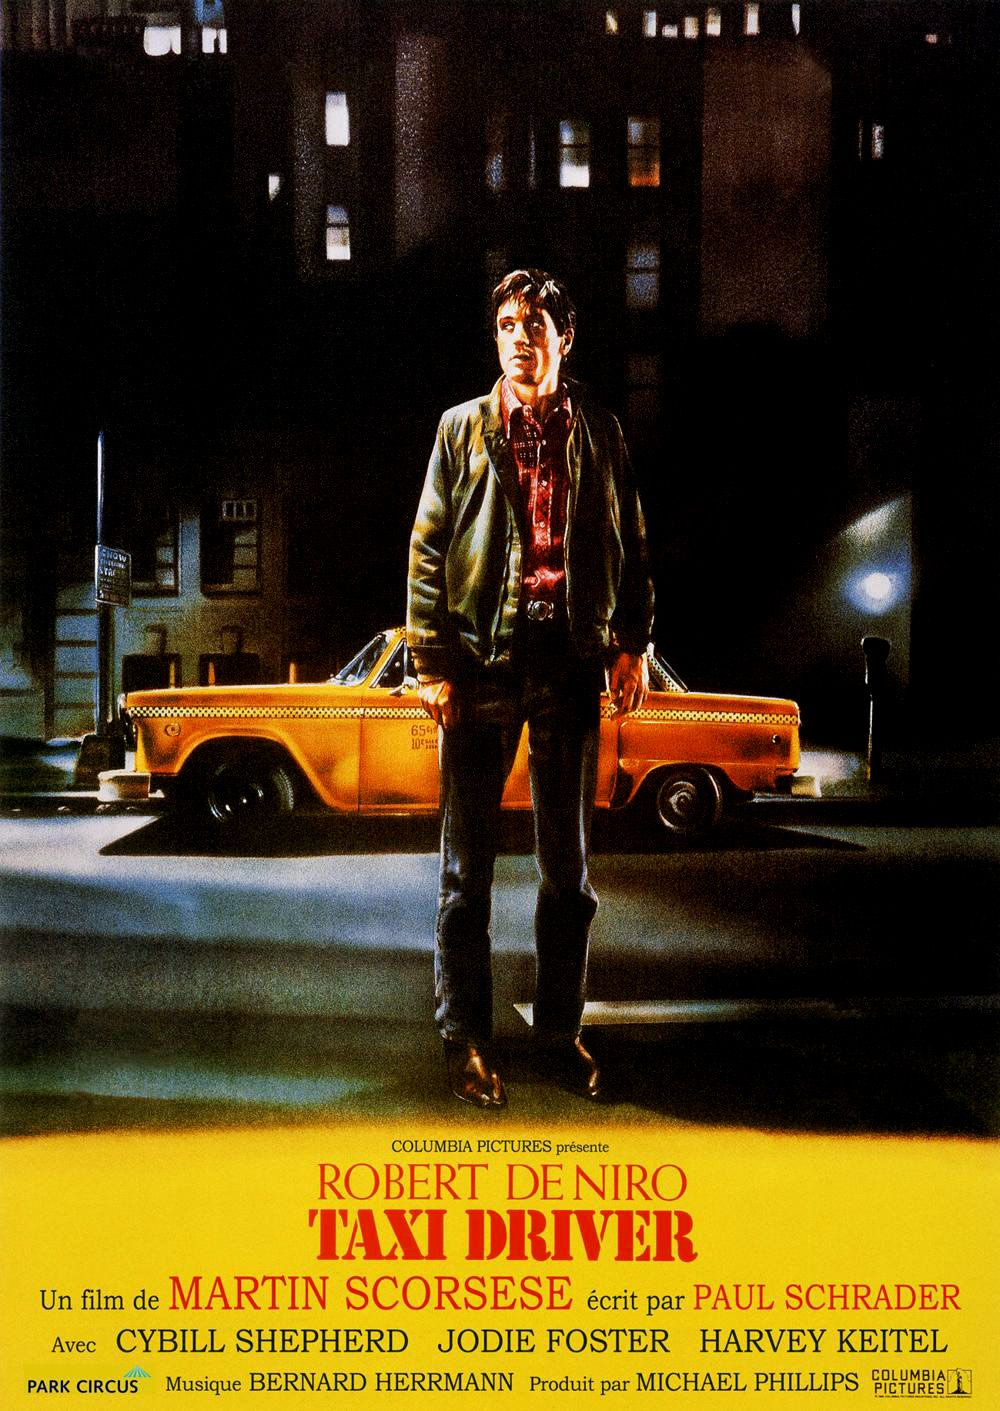 taxi driver film 1976 senscritique. Black Bedroom Furniture Sets. Home Design Ideas